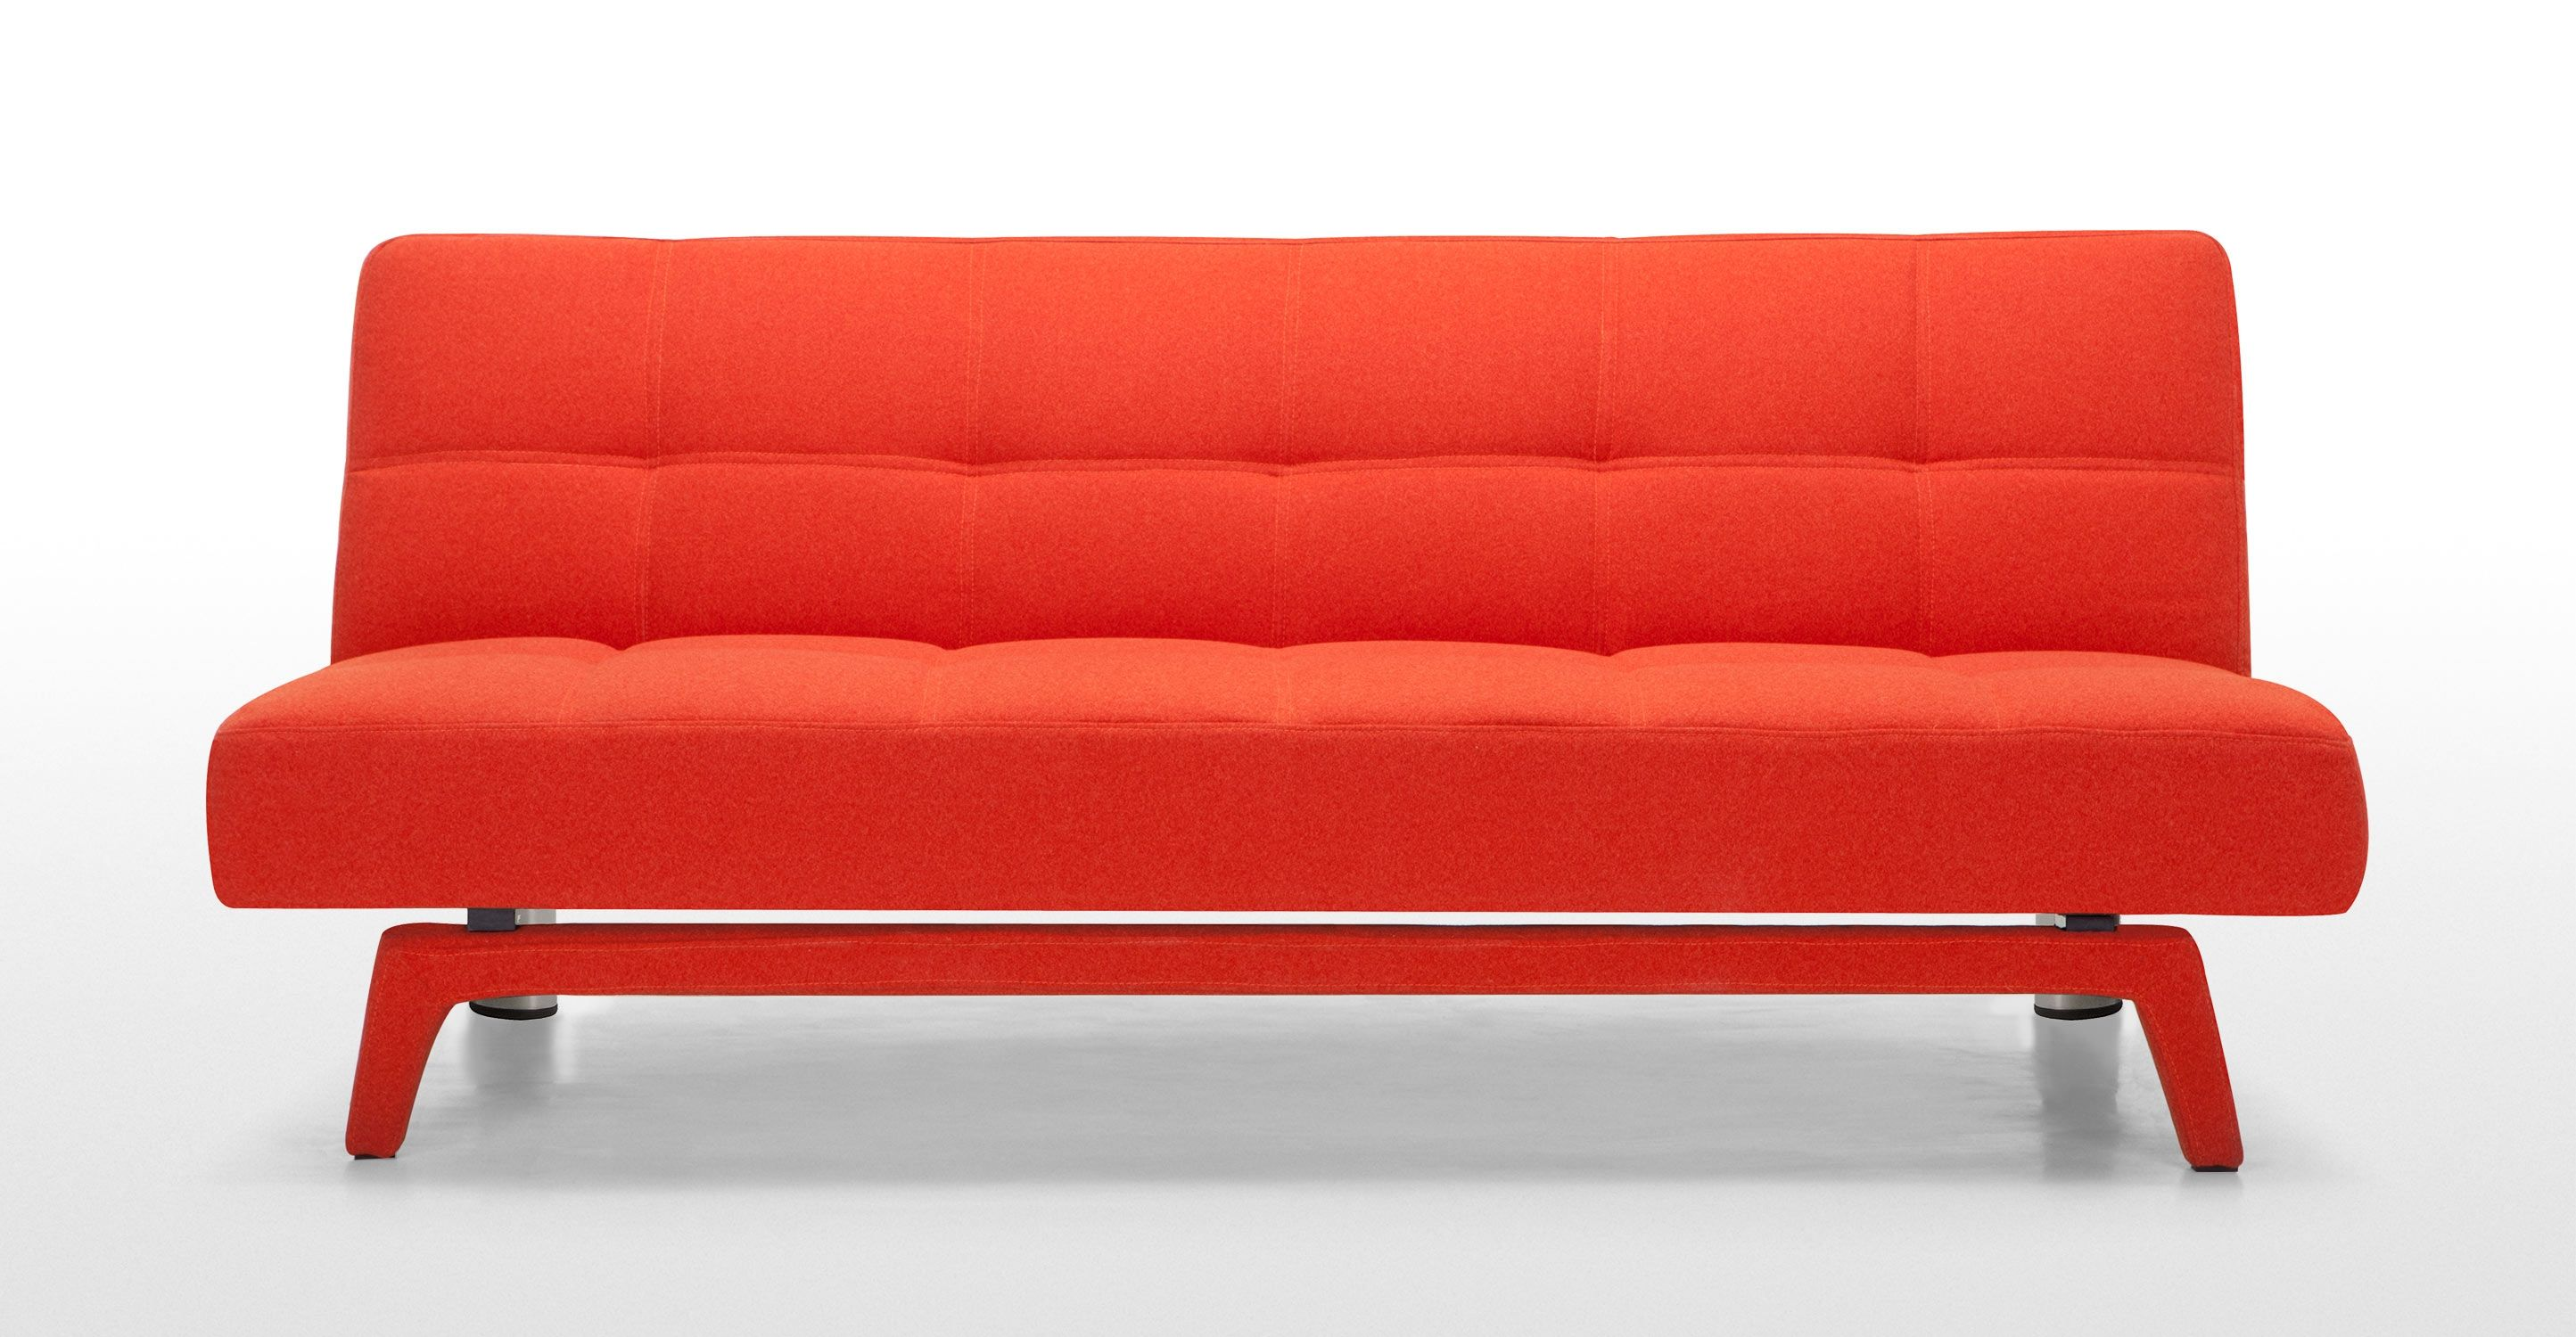 Sofa Bed Express Delivery Made Com Sofa Dekoration Image Idee